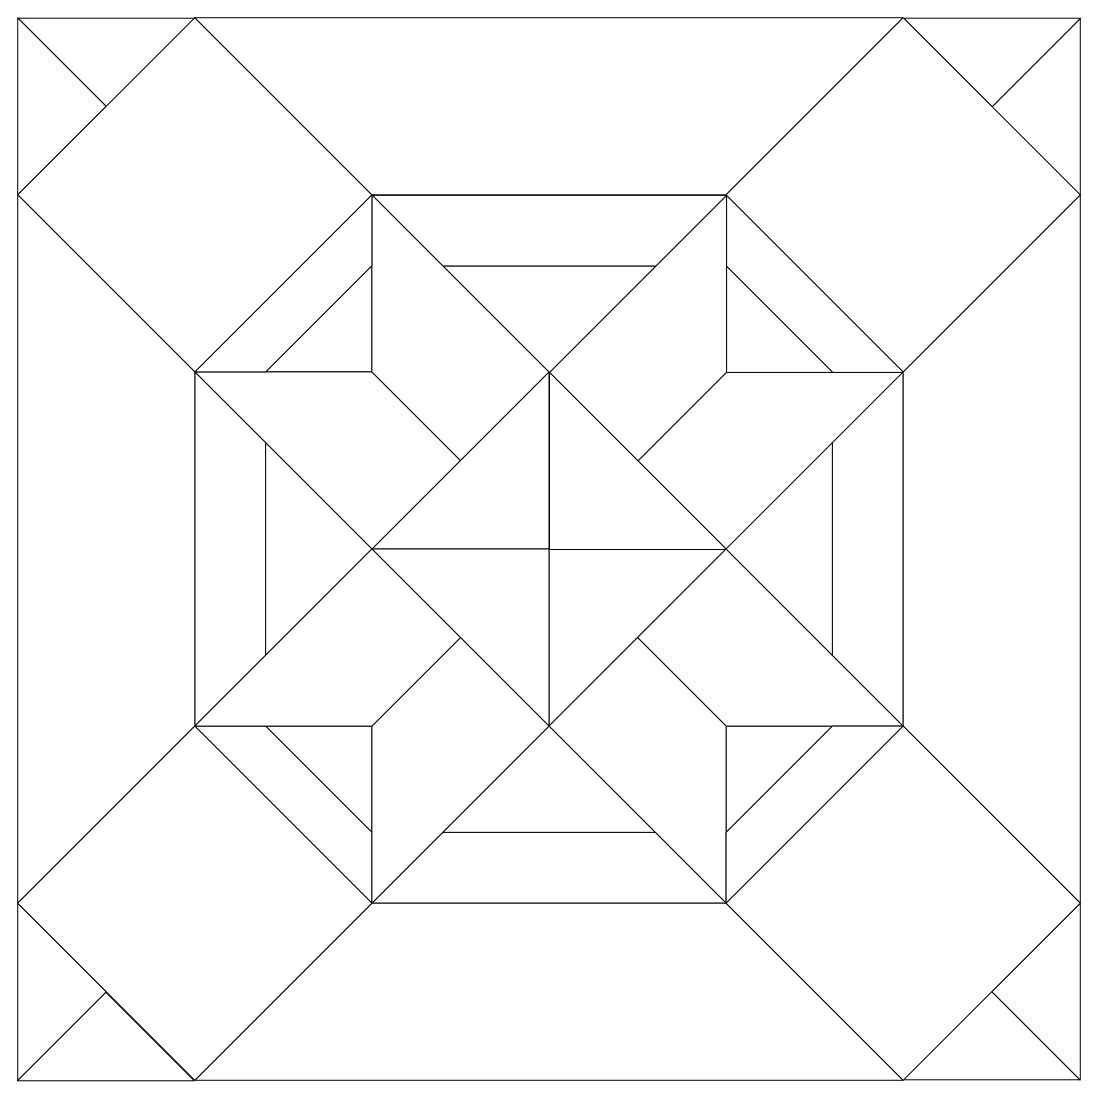 35 Cool Paper Piecing Patterns | Guide Patterns - Free Printable Paper Piecing Patterns For Quilting